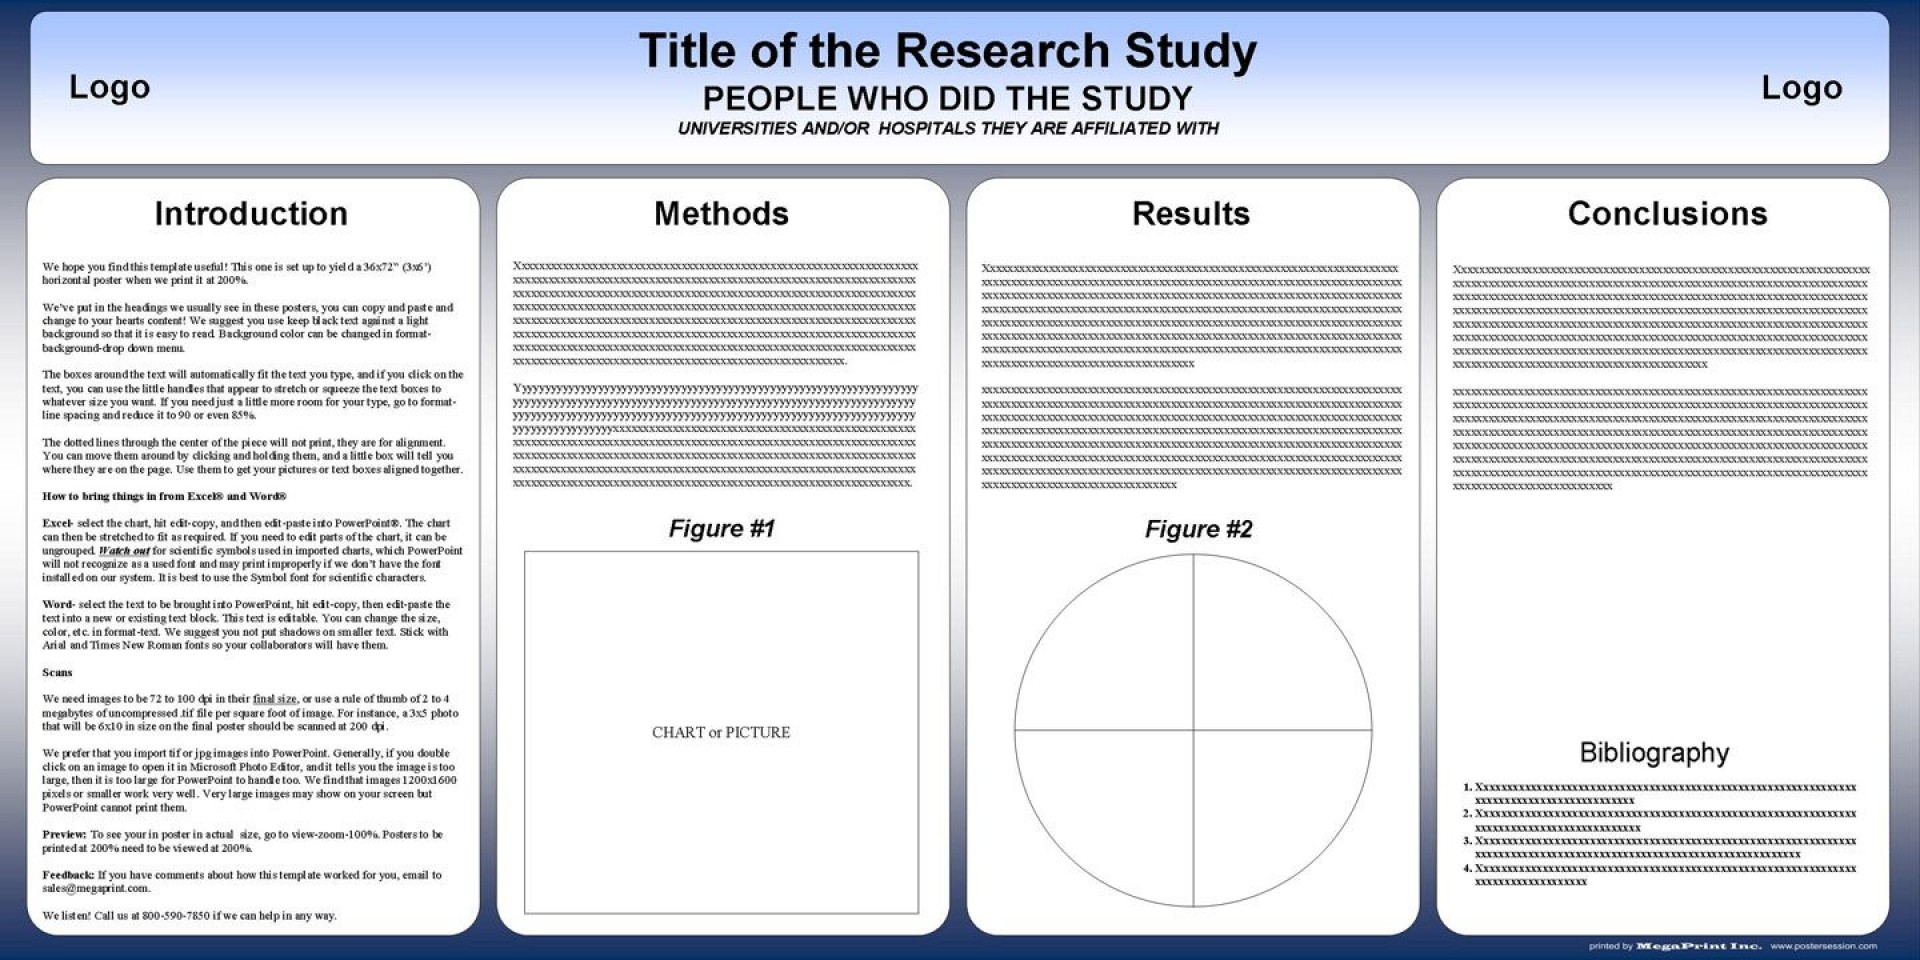 002 Stunning Scientific Poster Template A1 Free Download Design 1920